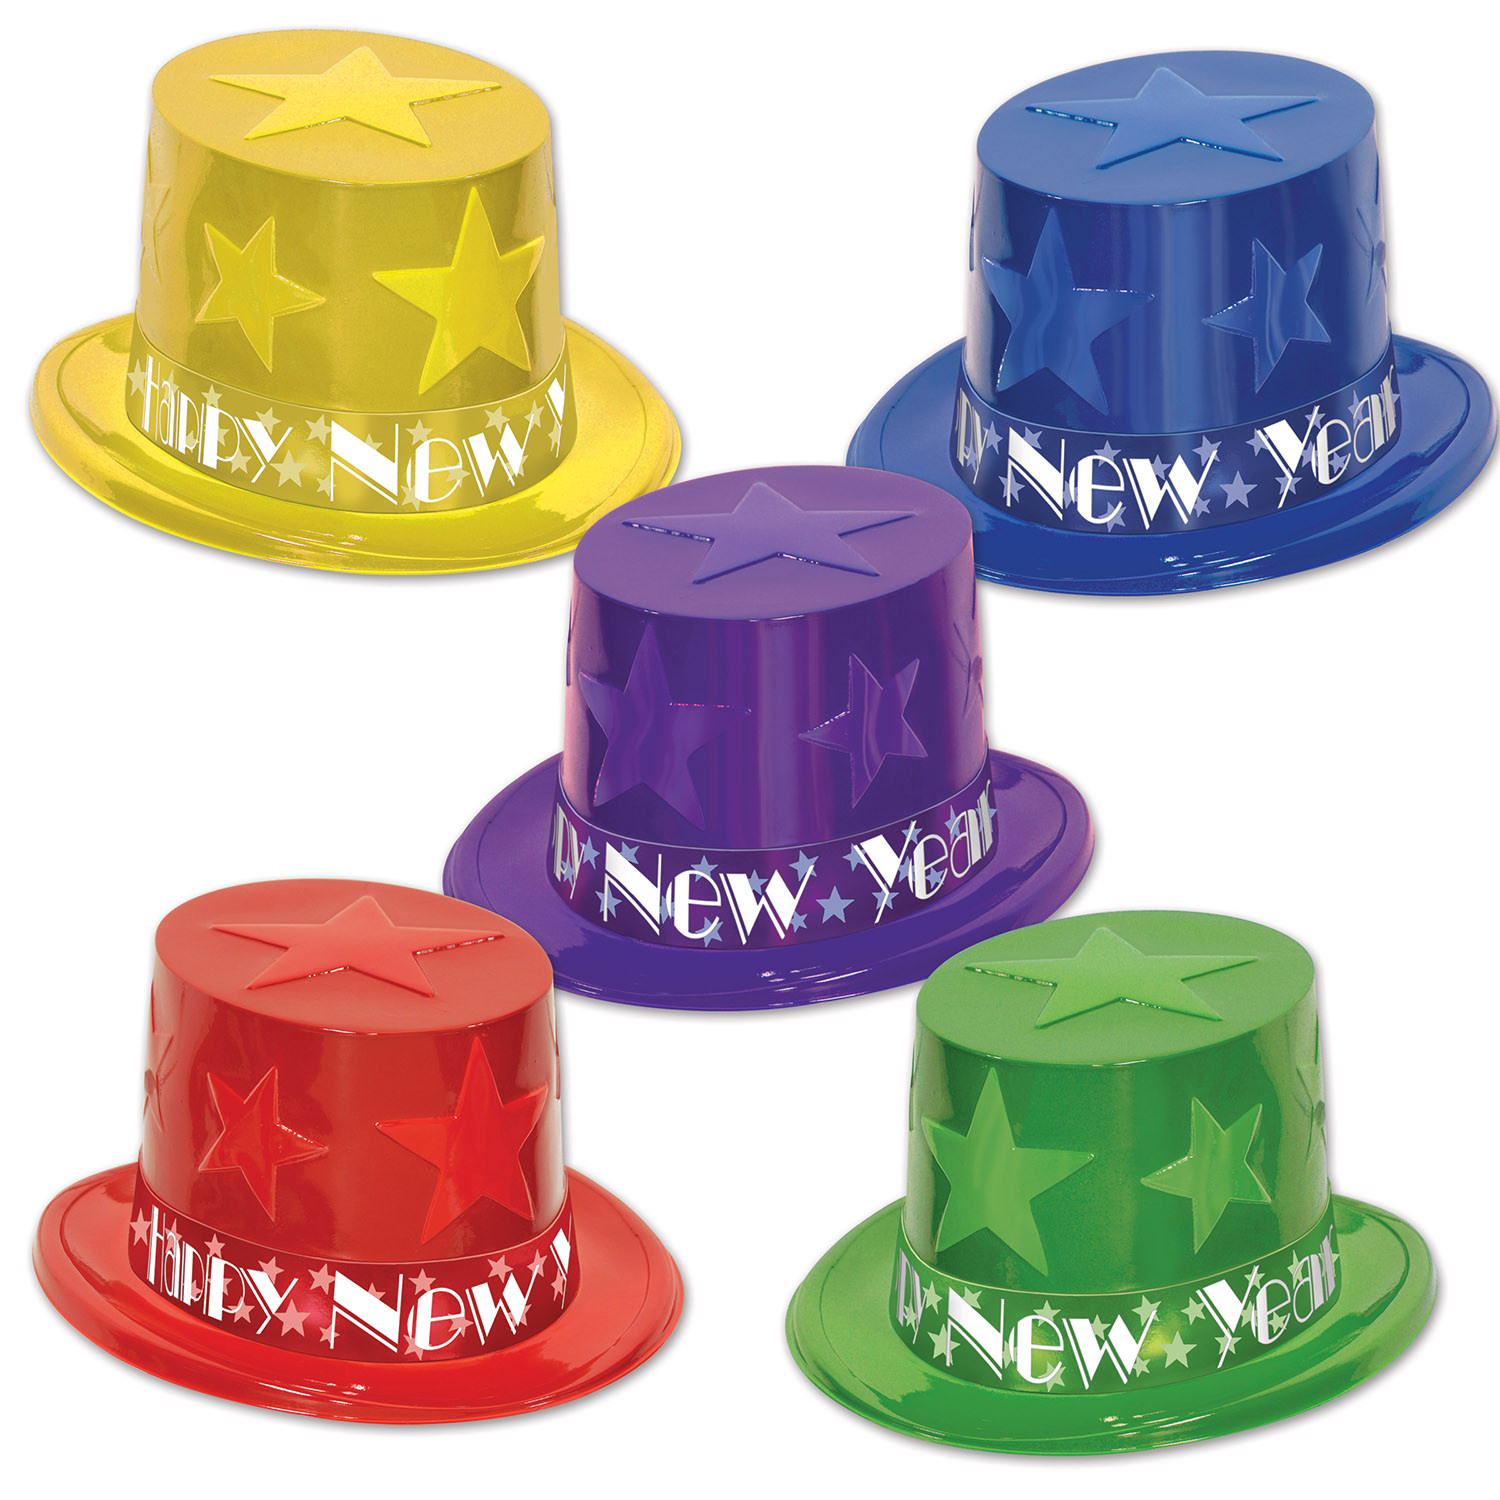 assorted color party top hats with stars on them with happy new year bands around the bottom